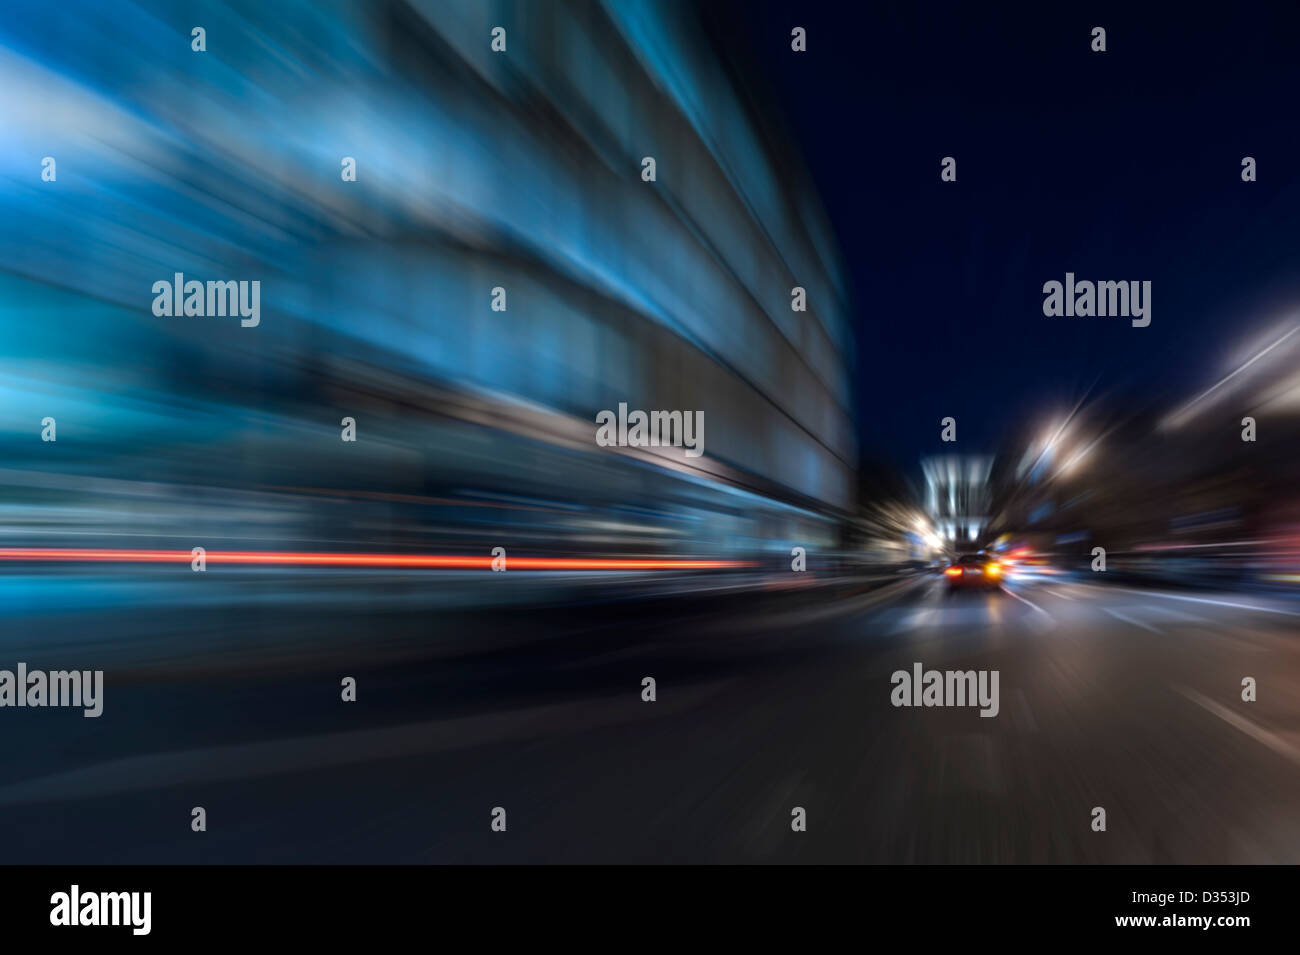 Night acceleration speed motion abstract in blue - Stock Image